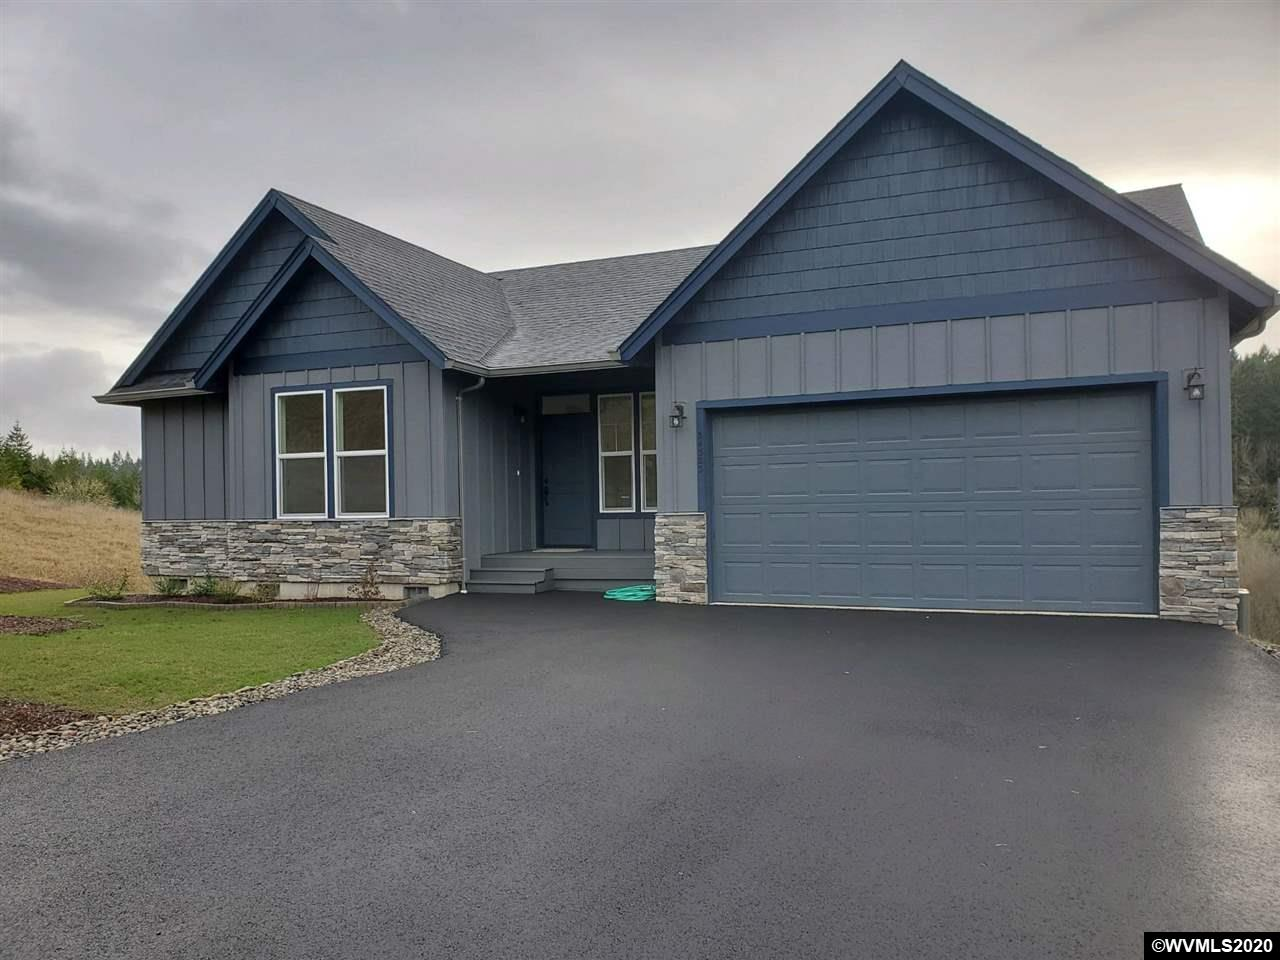 "Great views from this brand new CUSTOM 4 bd, 2.5 ba home on 2.46 acres in upscale Wren Hill Estates just 15 min to dwntwn Corvallis & 40 to the coast! Bright great room floor plan w/vaulted ceilings, 13 ft marble fireplace, & master on main. Large kitchen w/island, new appliances & high end natural quartz & marble finishes. Master suite w/soaker tub, spa shower & roomy closet. ""Smart"" home w/ double insulation, UV water filter, & 'lots of room to build a shop & customize. Miles of trails and forests."